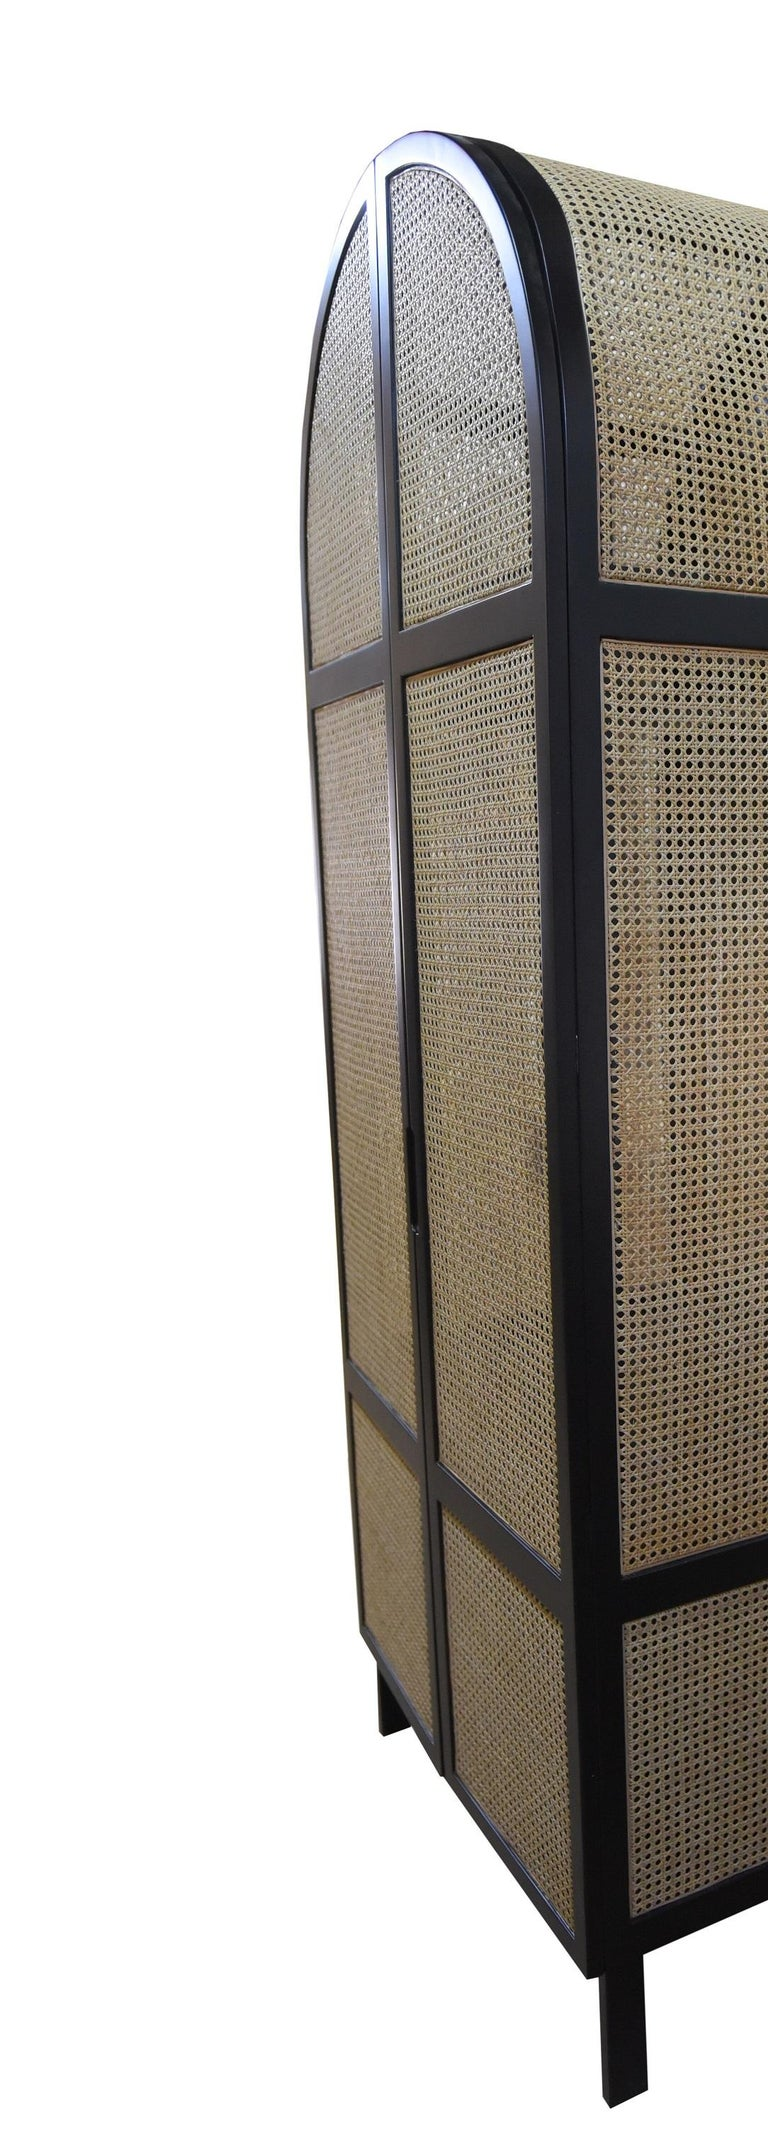 Mid-Century Modern Mystery Cabinet, Contemporary Wardrobe in Woven Cane and Black Lacquer Frame For Sale